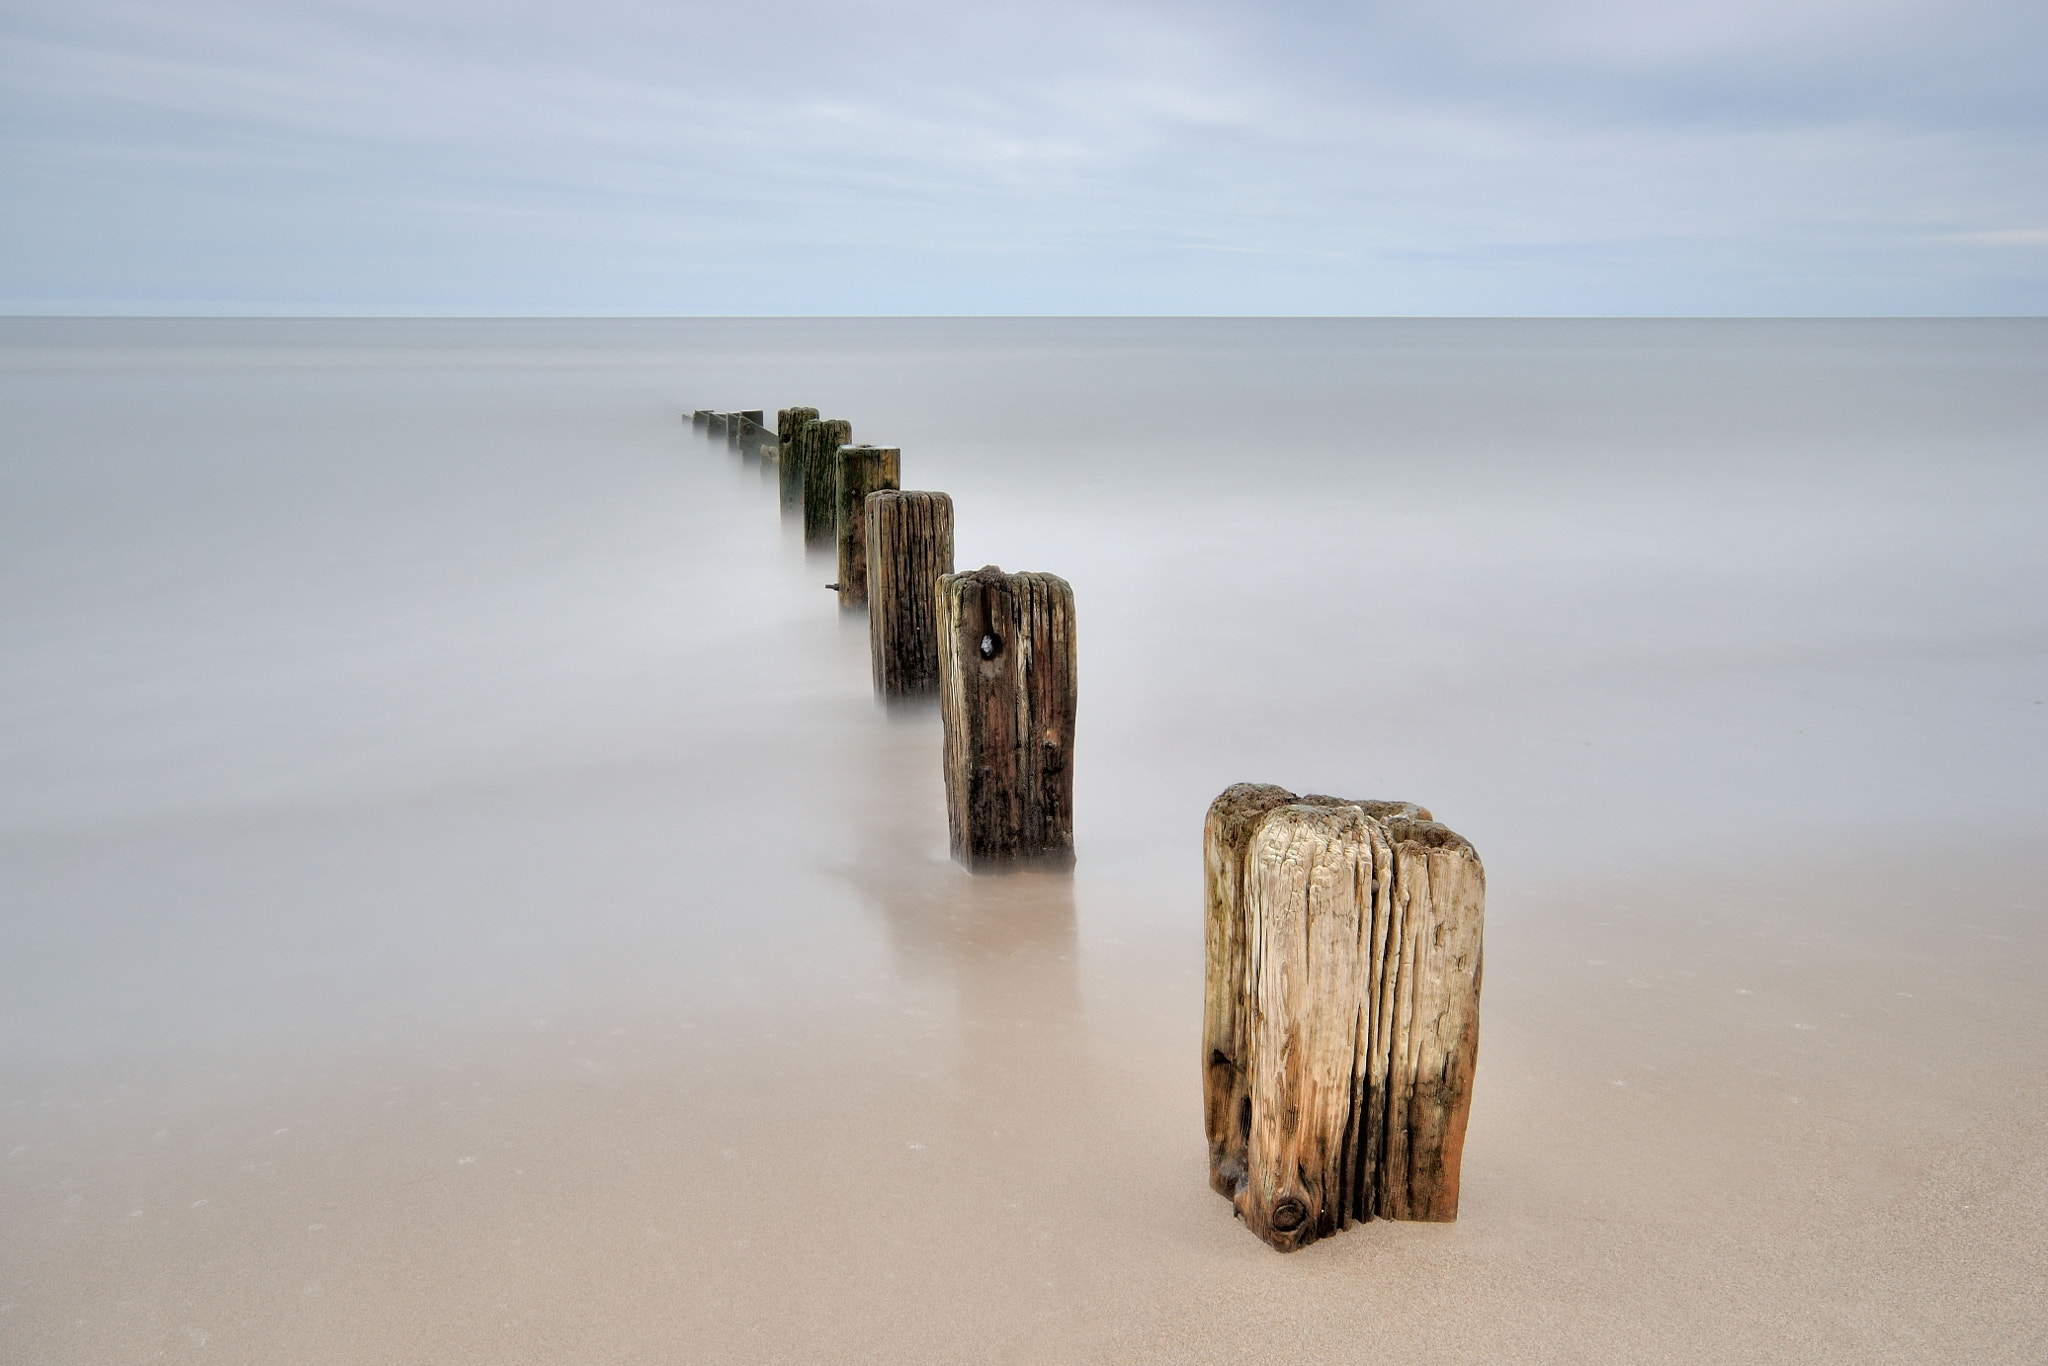 Photograph Spittal Beach by Caledonia Caledonia on 500px